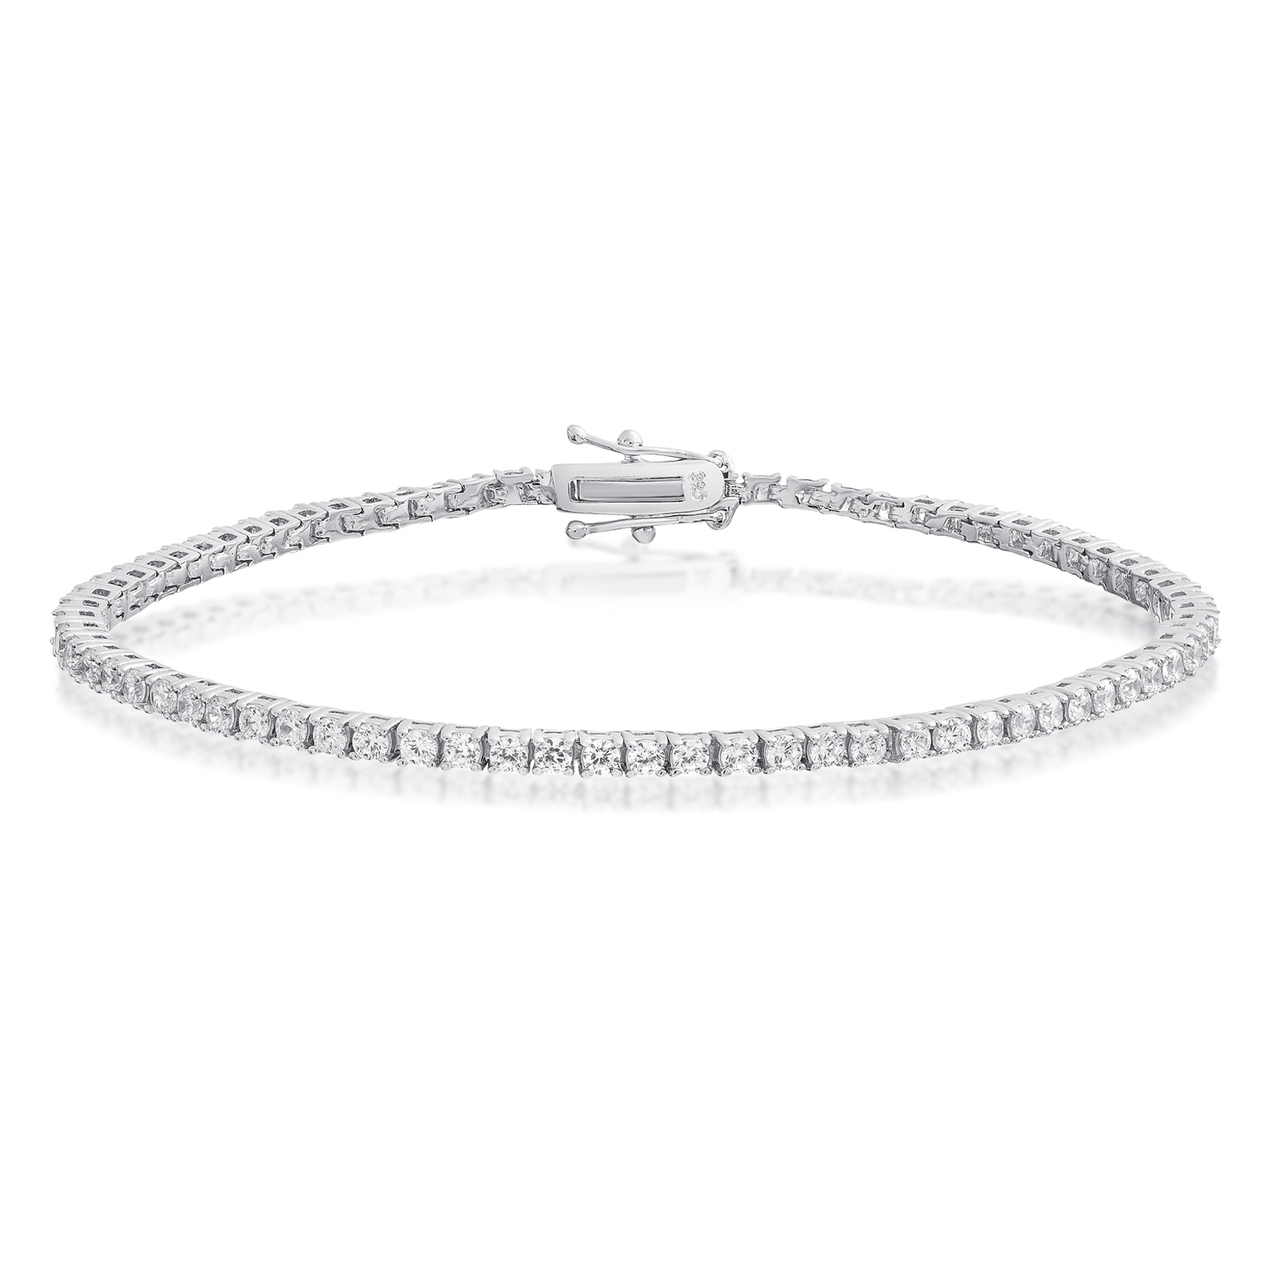 jewelry bracelet cut plated rm rhodium mens bling s silver cz sterling invisible link men